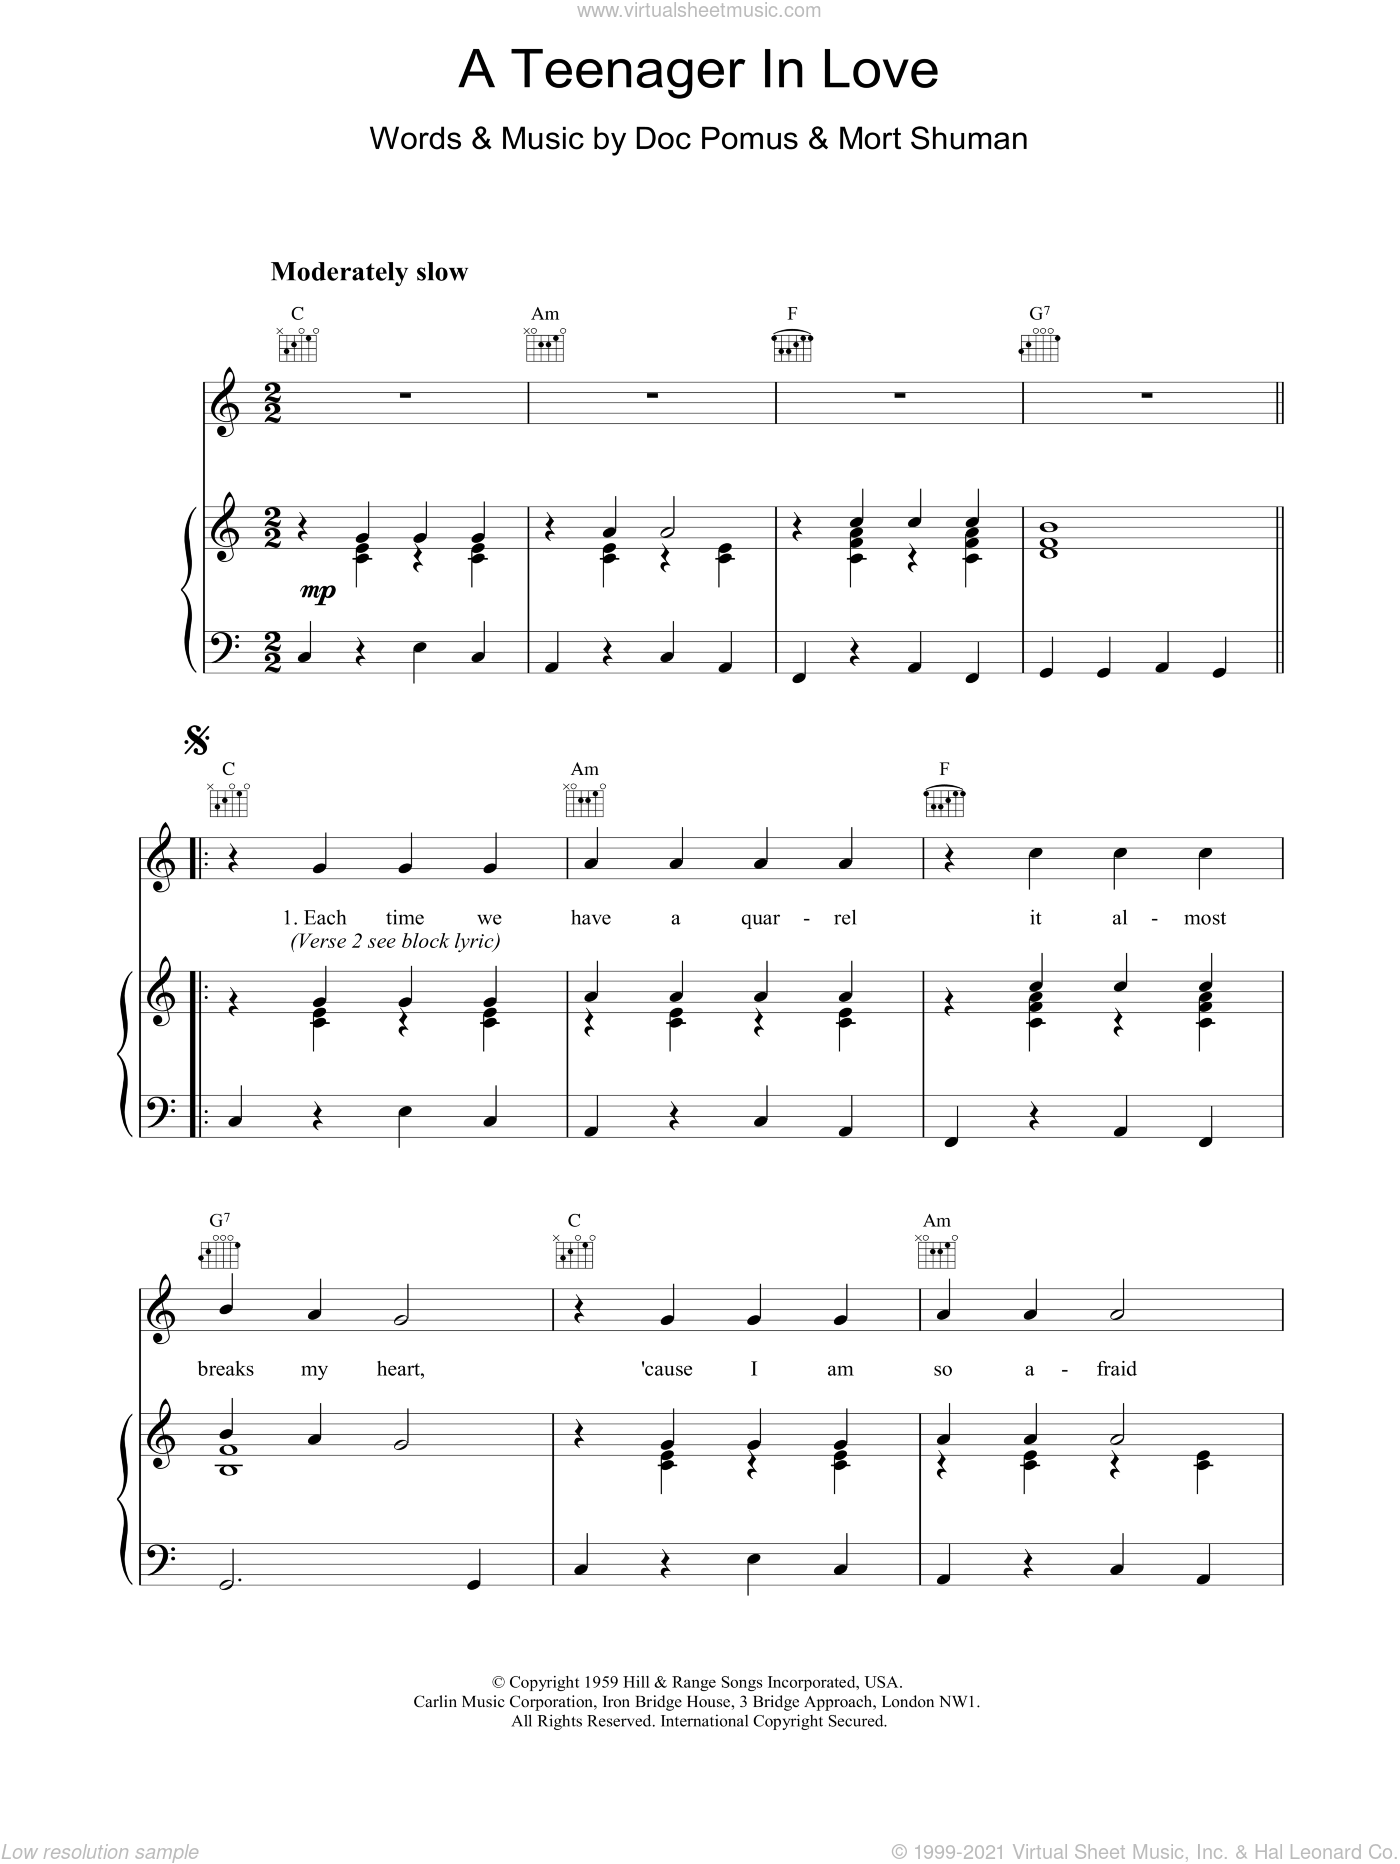 A Teenager In Love sheet music for voice, piano or guitar by Dion & The Belmonts